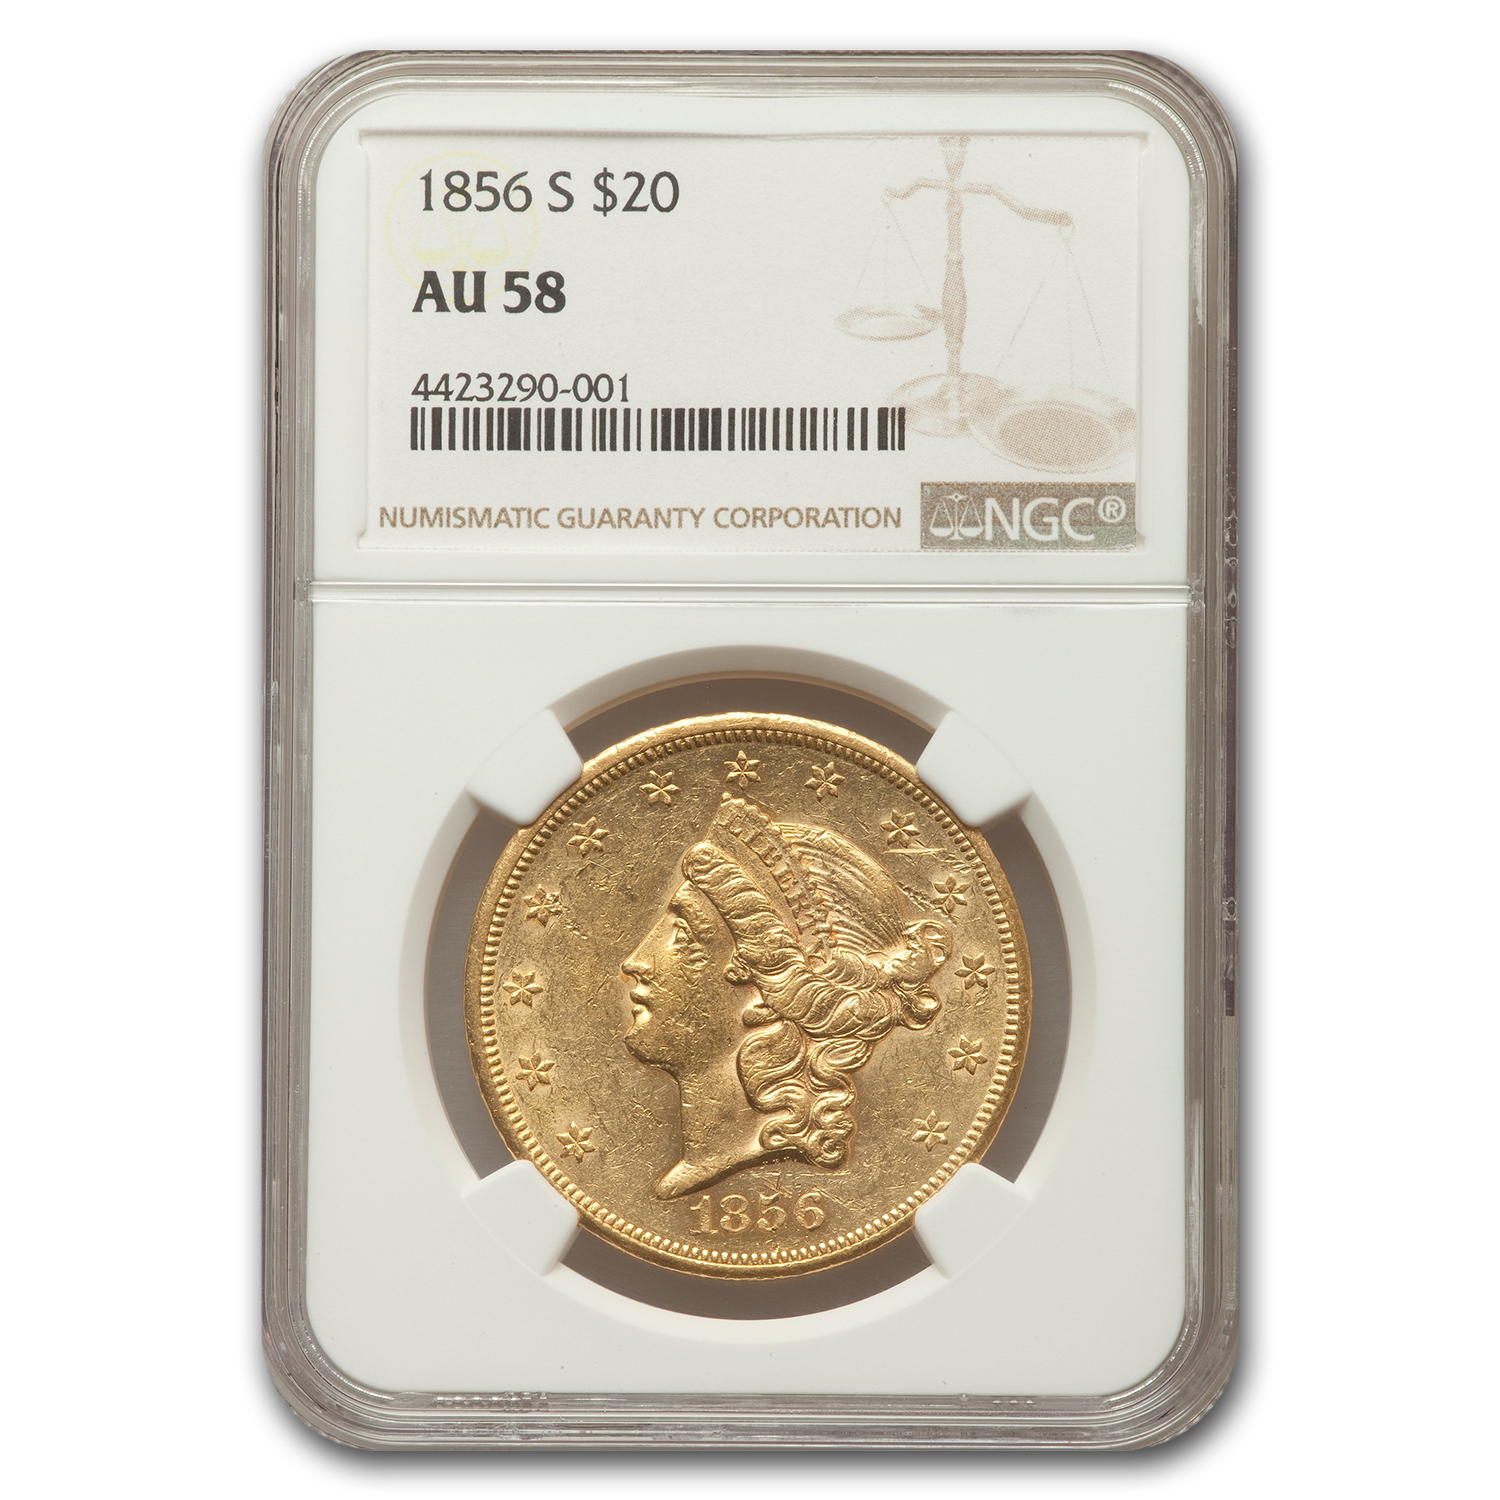 1856 20 Liberty Double Eagle Almost Unc - 58 NGC